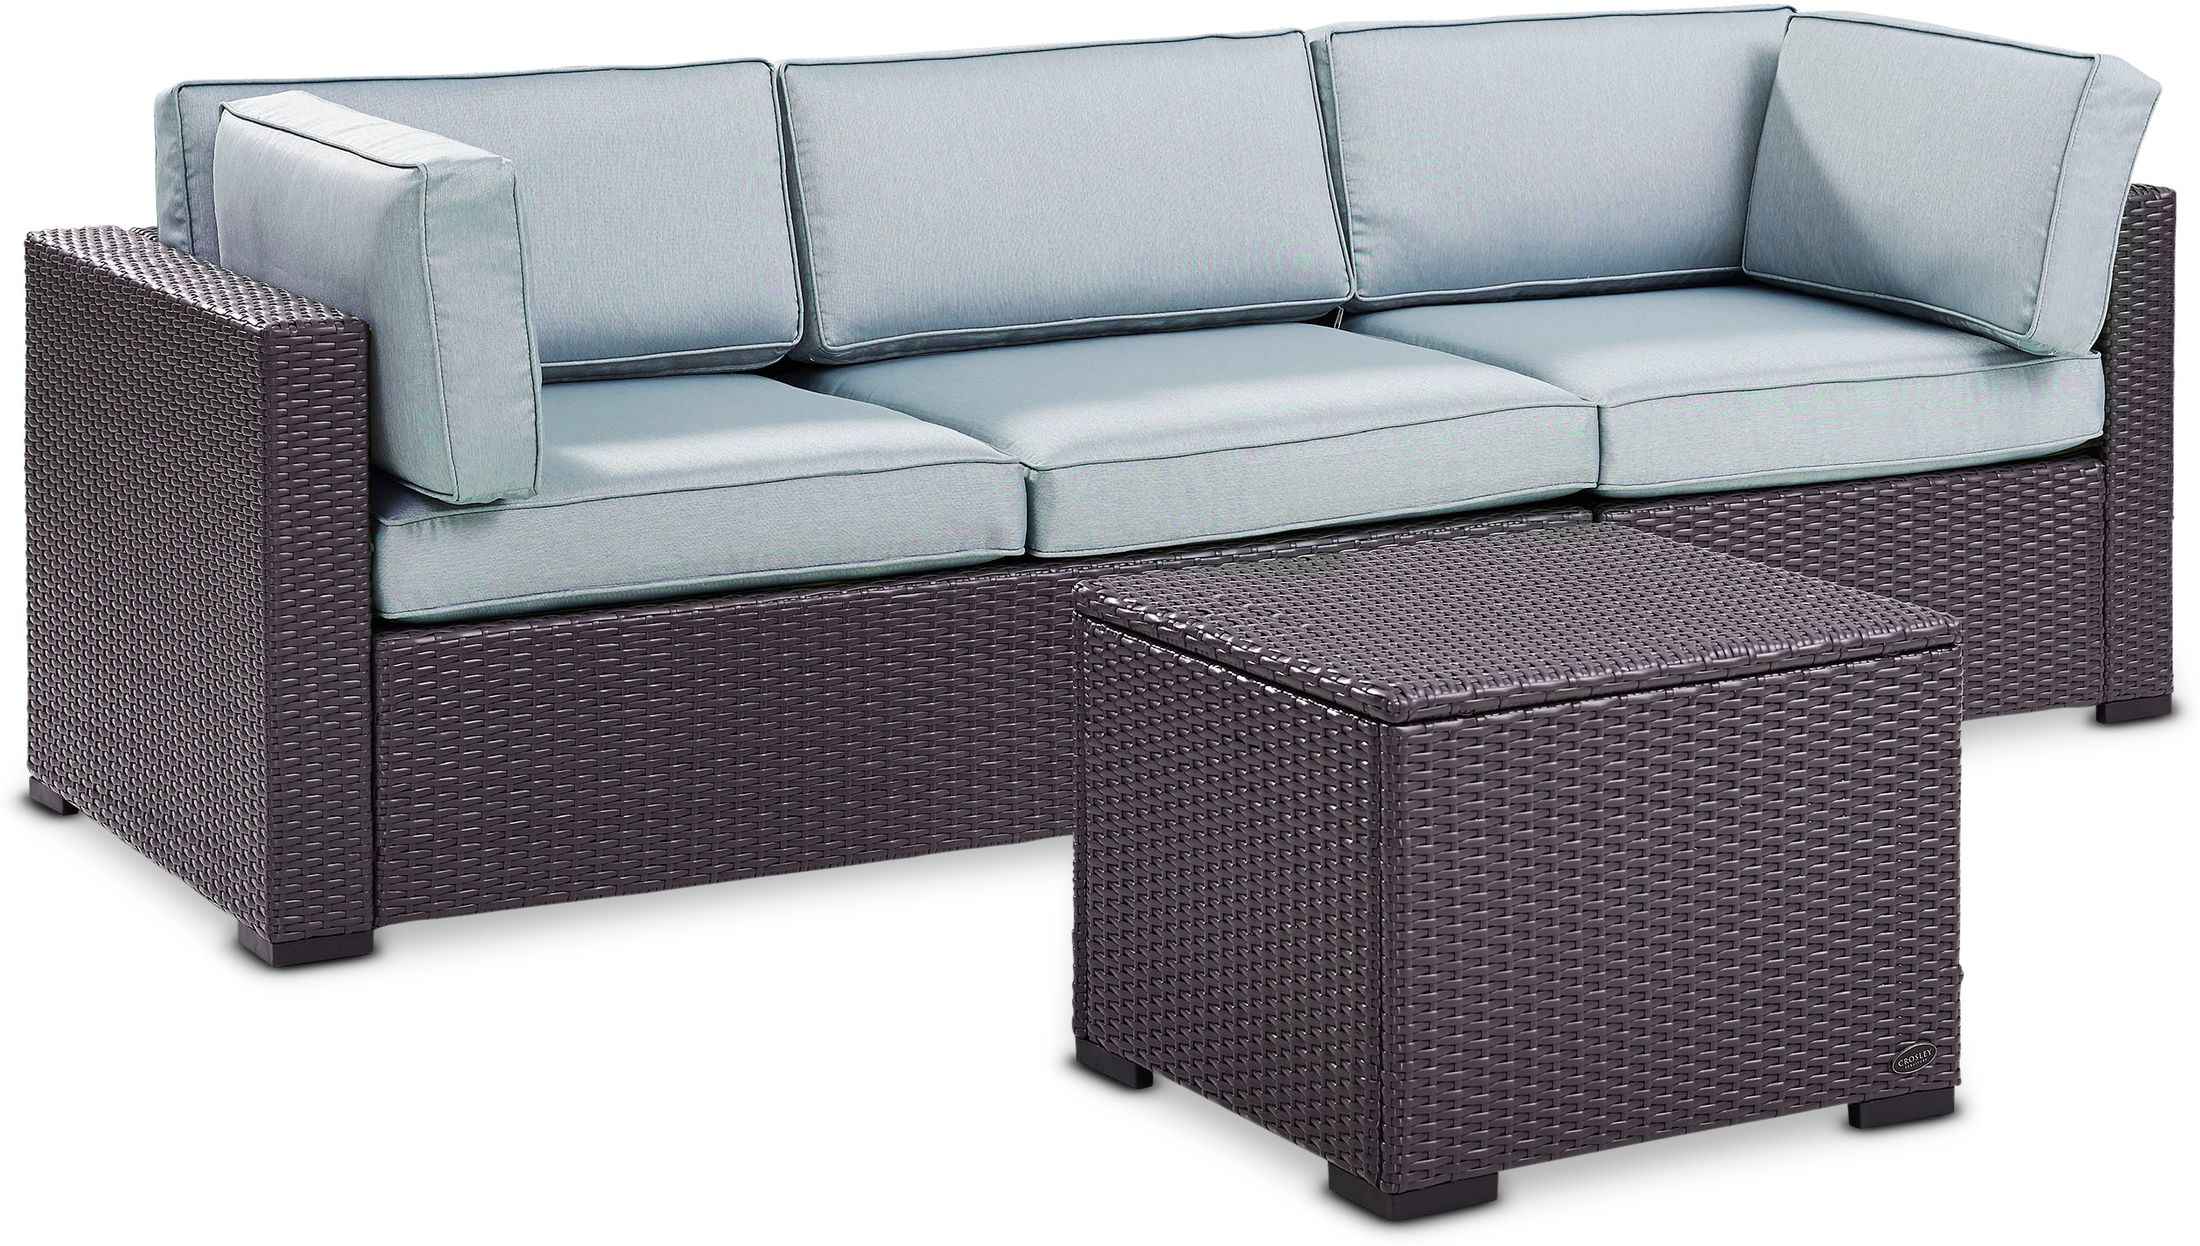 Outdoor Furniture - Isla 2-Piece Outdoor Sofa and Coffee Table Set